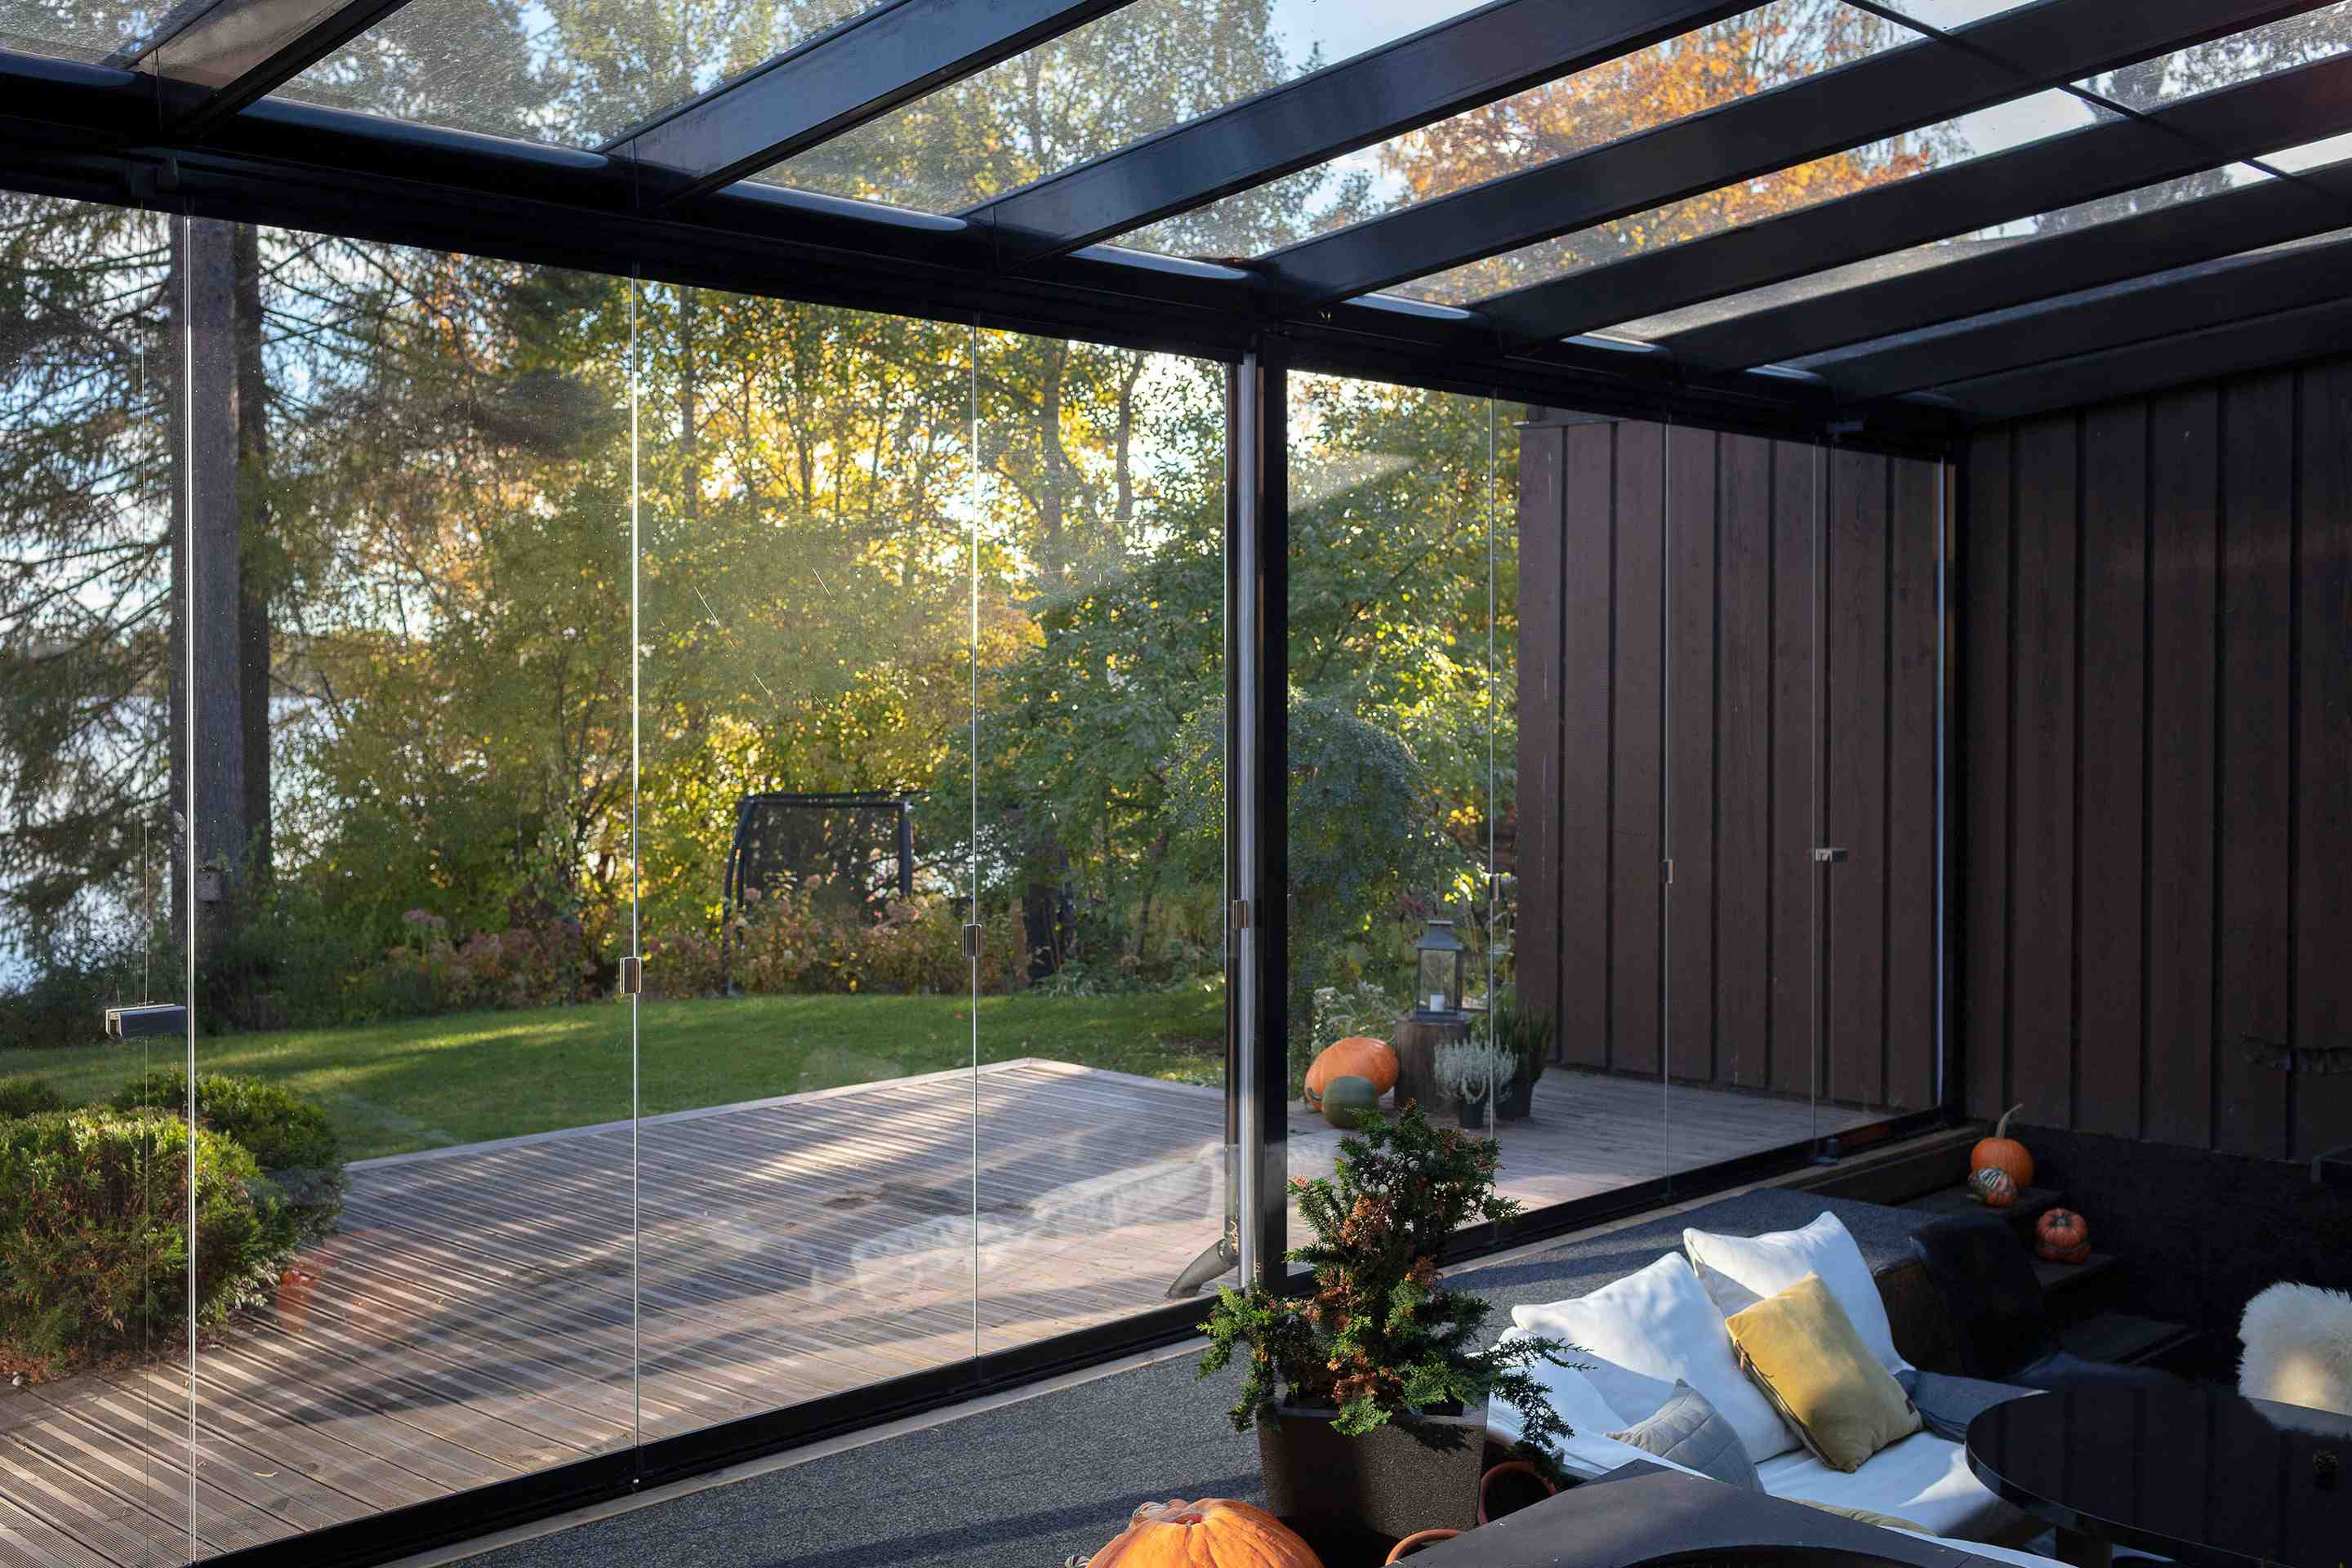 Lumon Canada, Patio Cover, Patio Enclosure, Retractable glass wall, sunroom toronto, sunroom hamilton, sunroom vancouver, sunroom ontario, sunroom bc